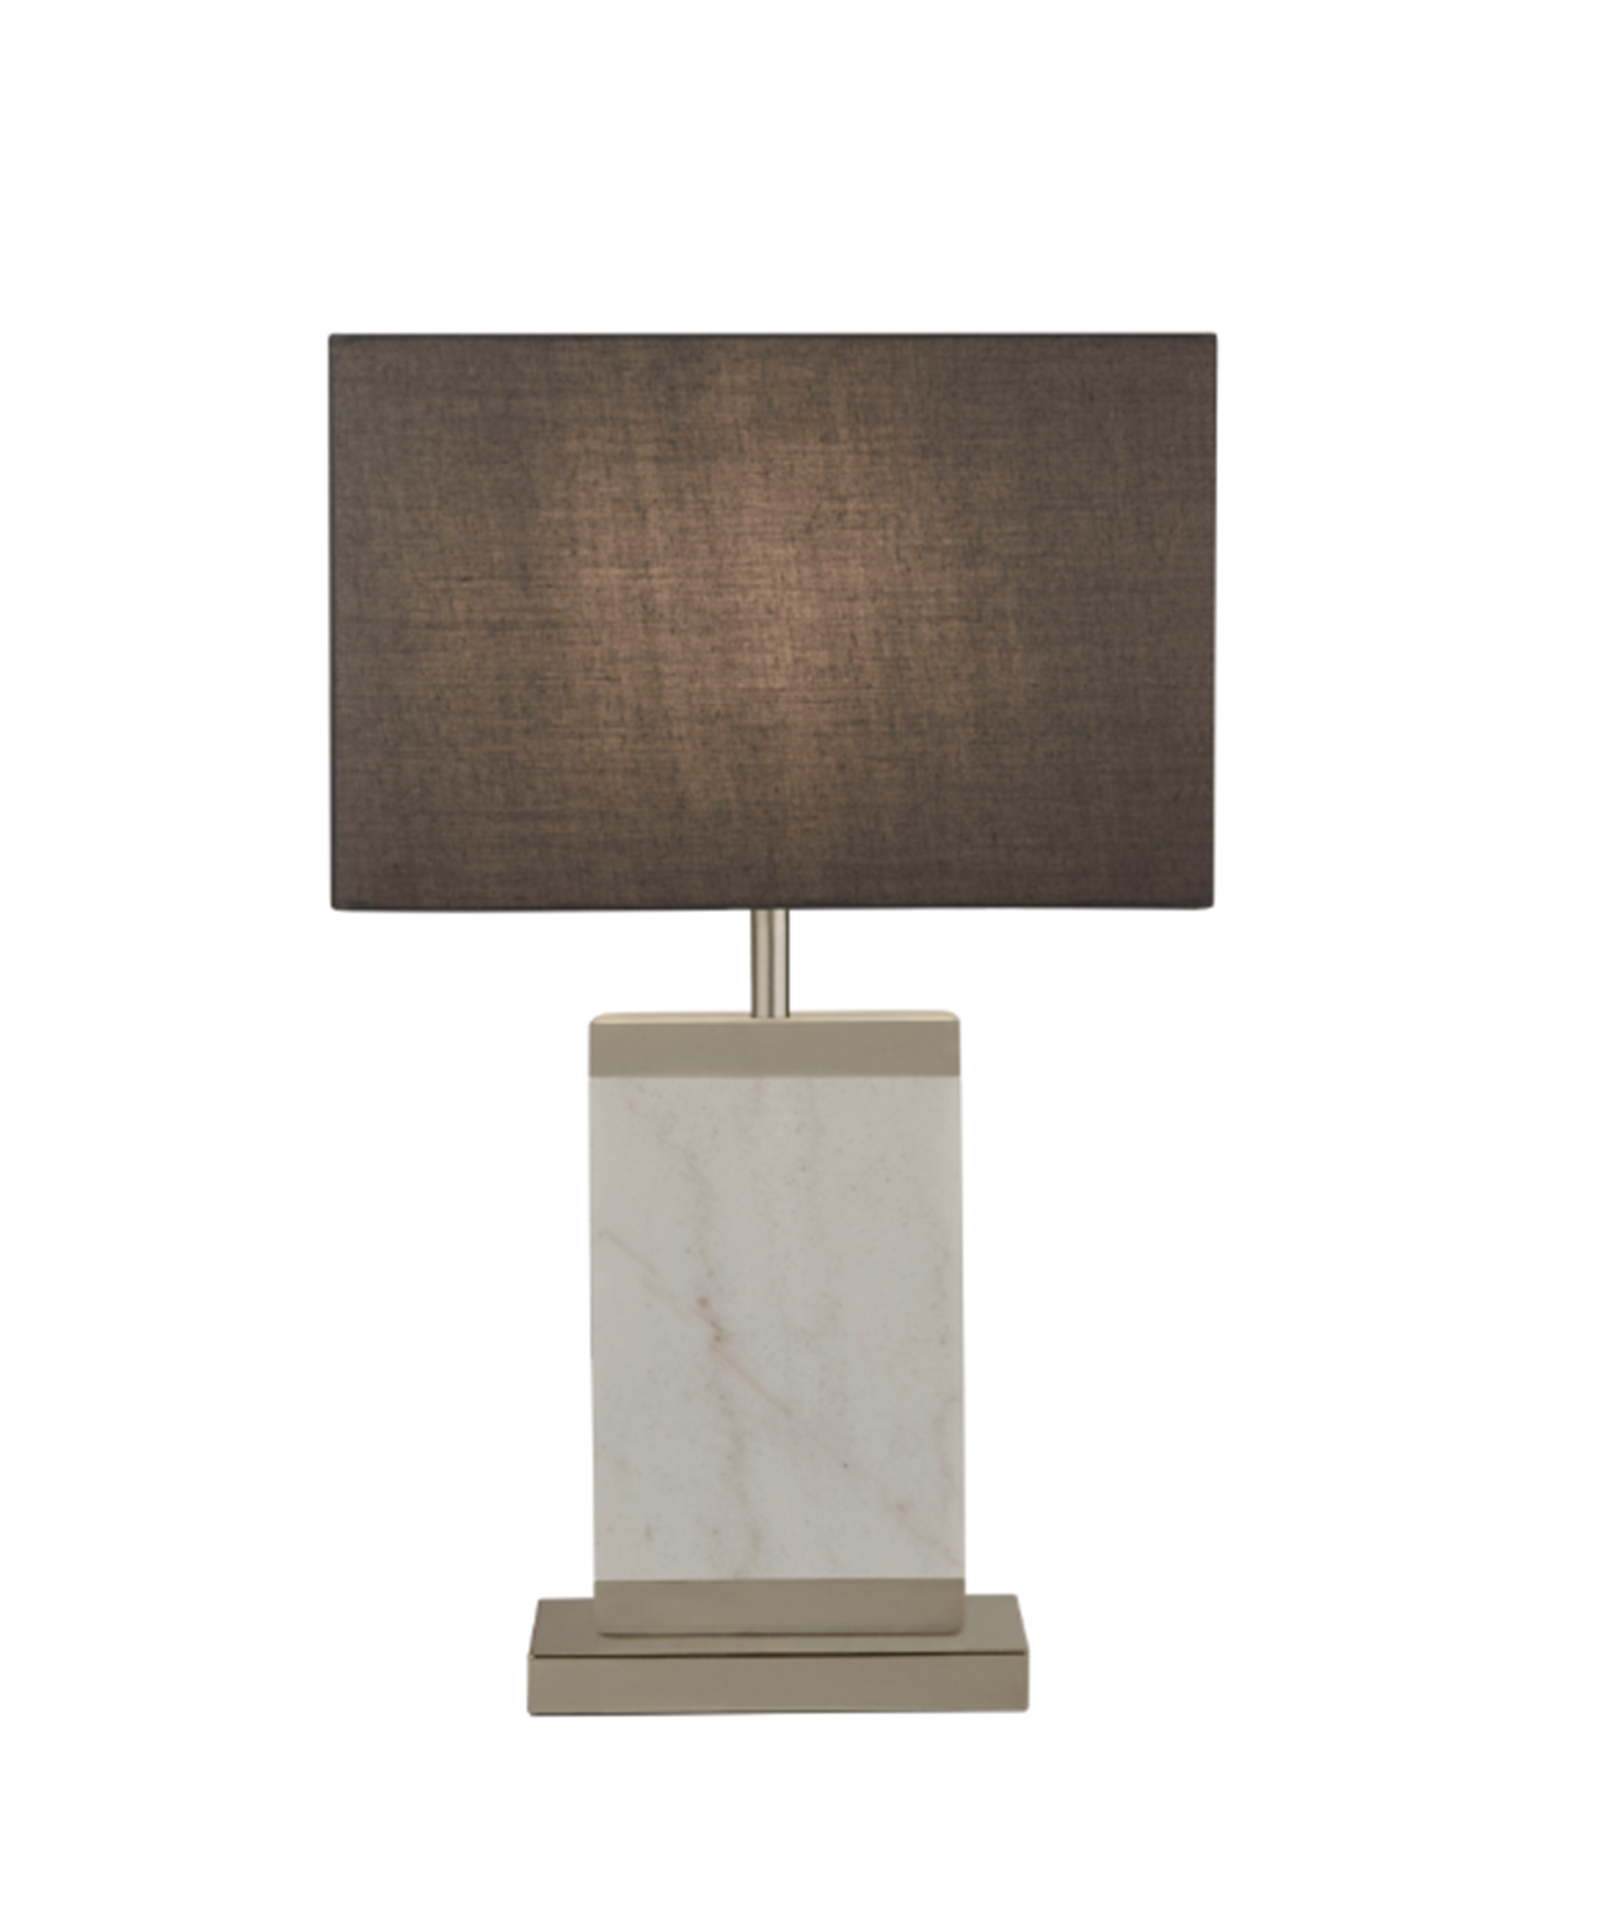 SEARCHLIGHT SATIN NICKEL AND WHITE MARBLE TABLE LAMP WITH GREY SHADE 9381SN